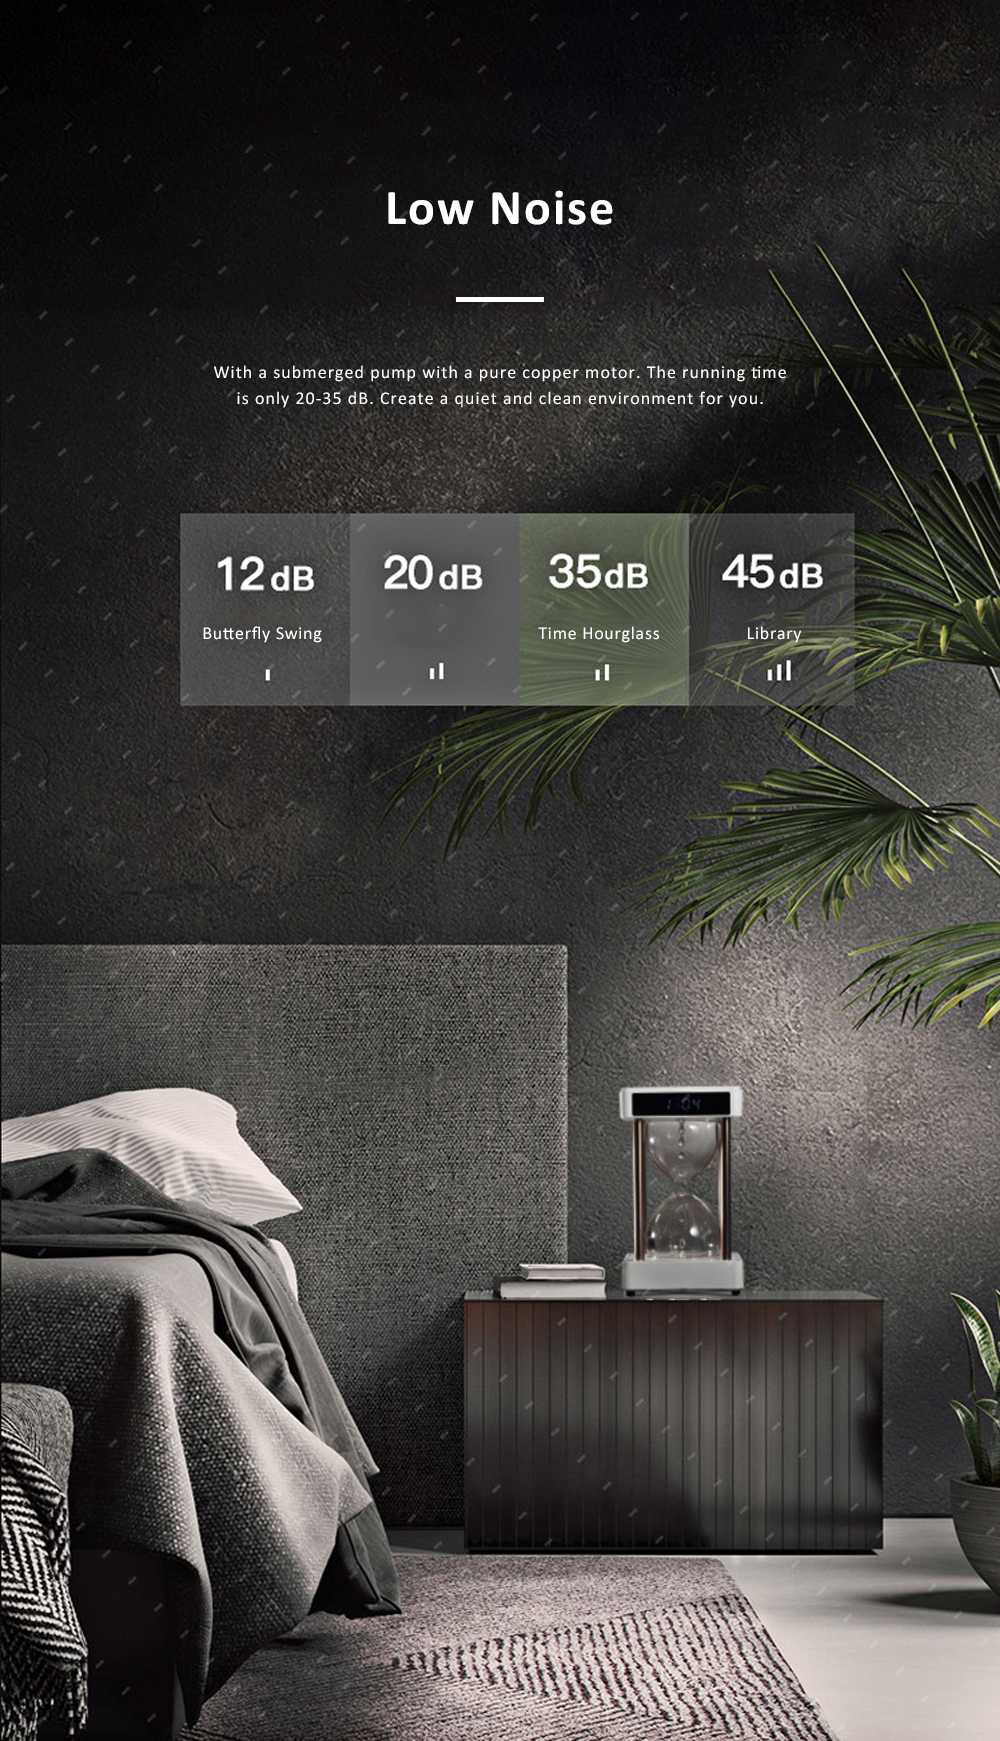 Tinkleo Air Purifier Anti-Gravity Time Hourglass with Water Drops Back Flow Desktop Humidification Deodorization Decoration Gift 5